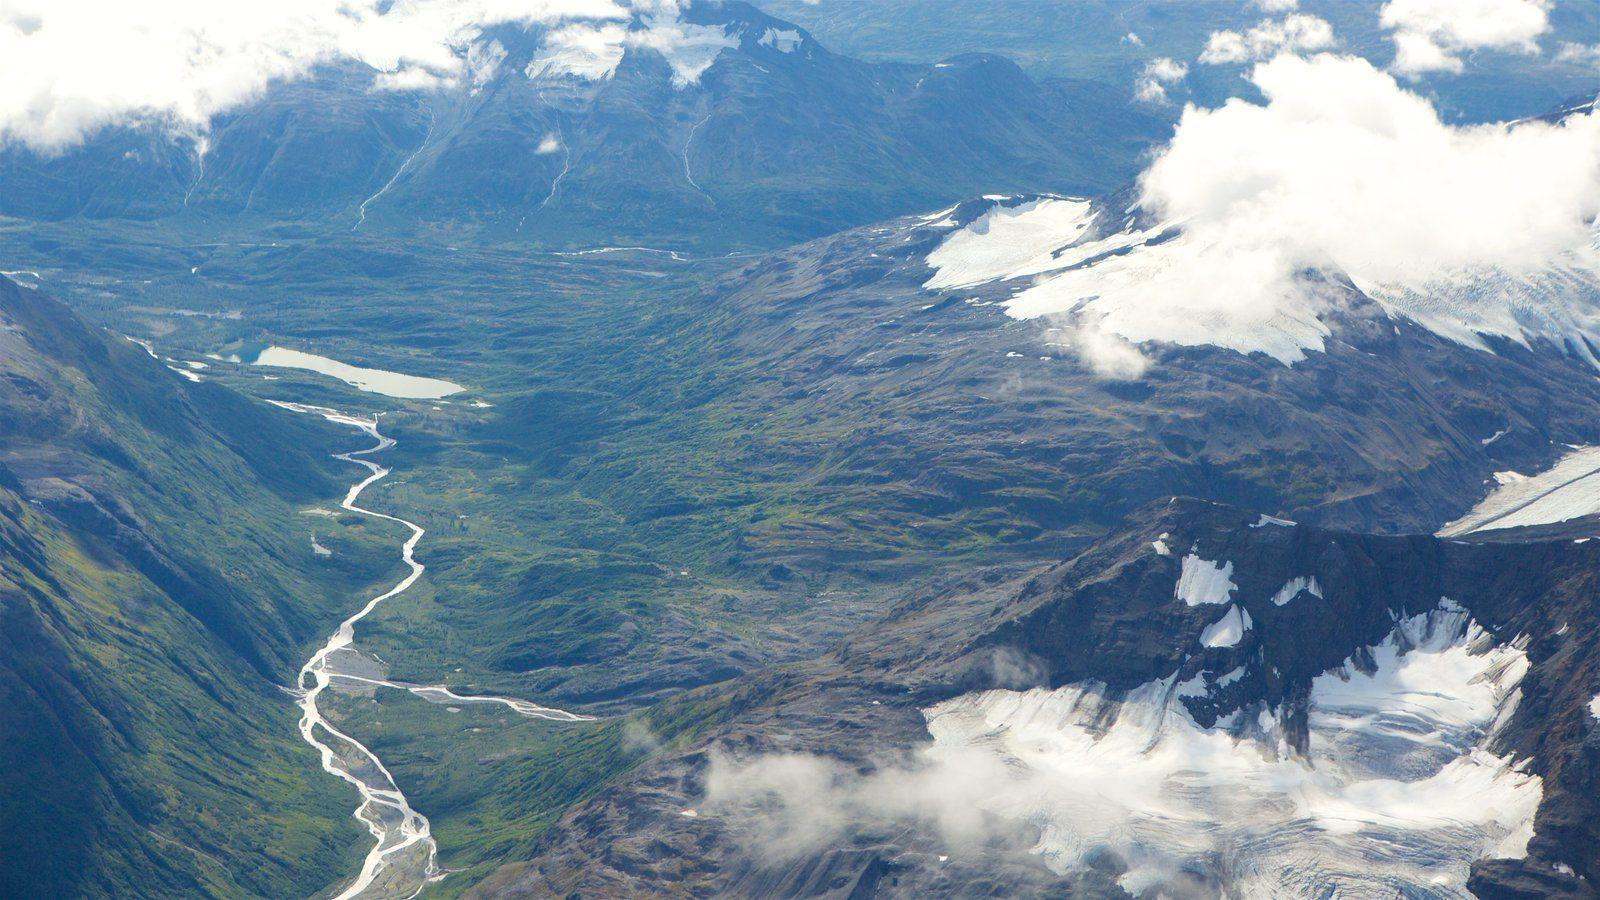 Mountain Pictures: View Images of Wrangell-St. Elias National Park ...